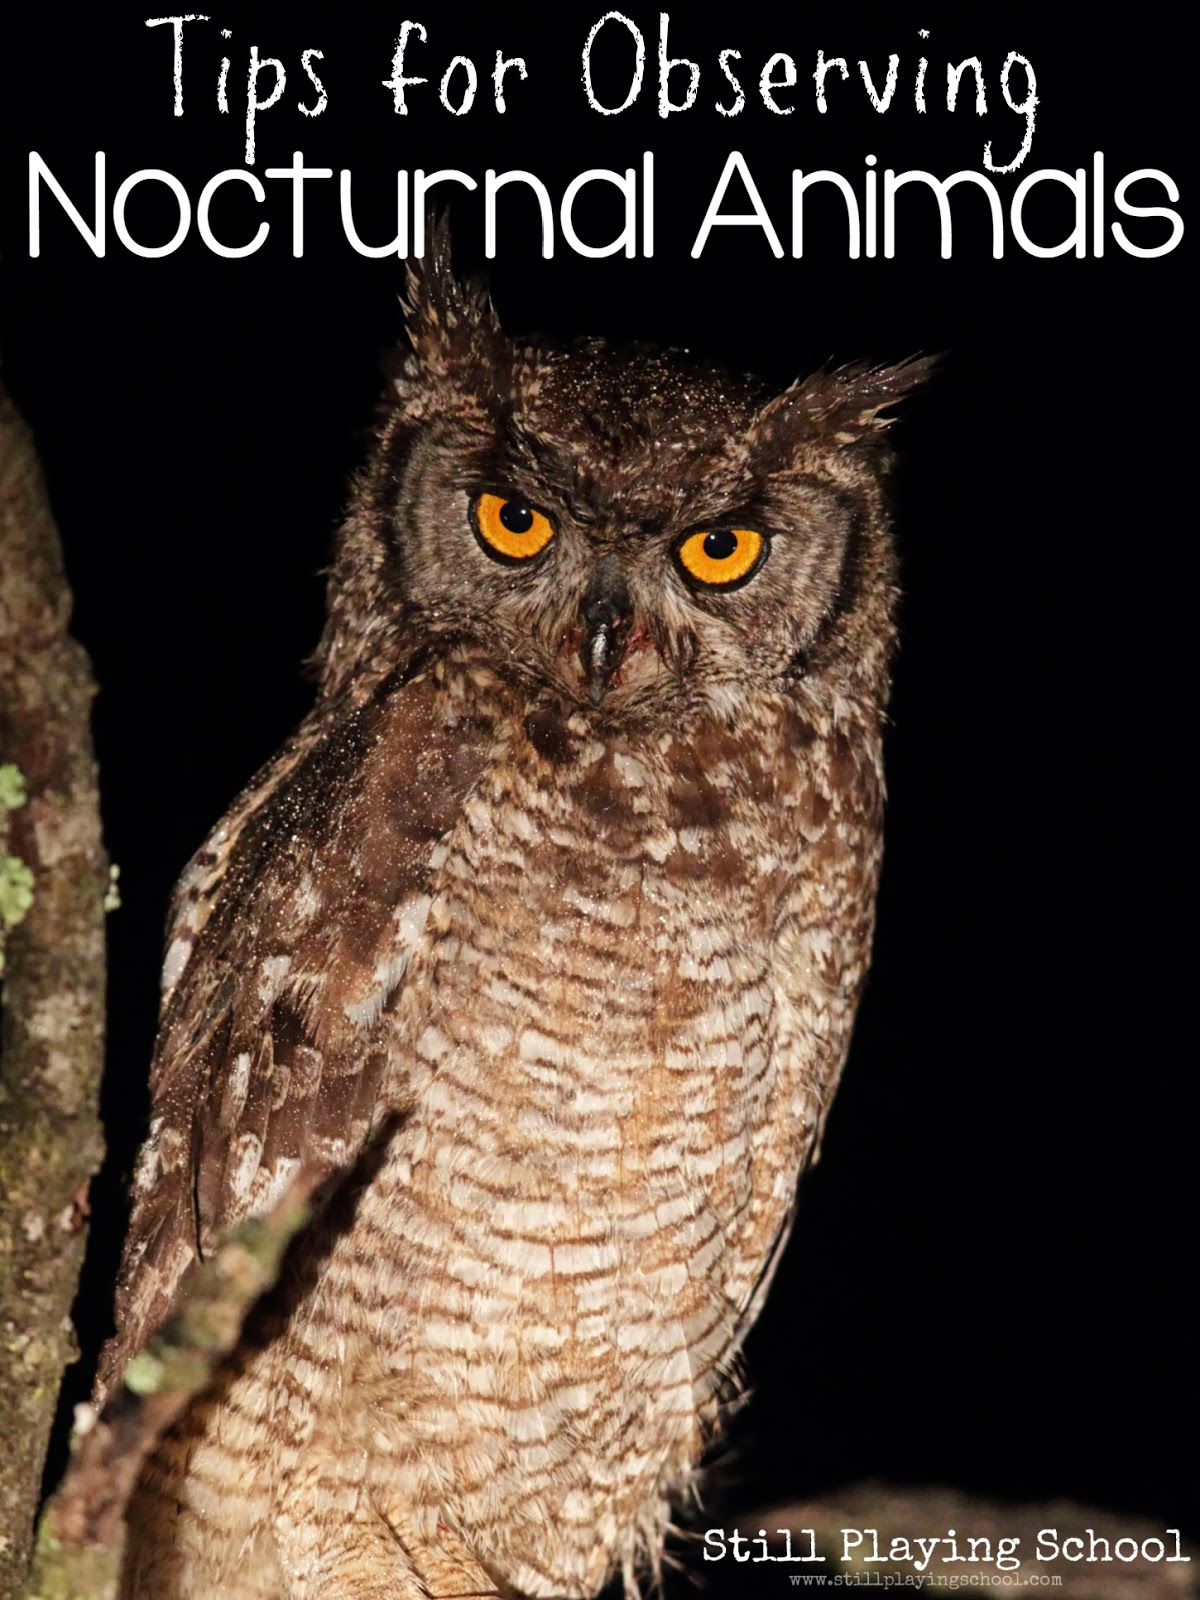 Image of: Horned Owl Still Playing School Tips For Observing Nocturnal Animals Still Playing School